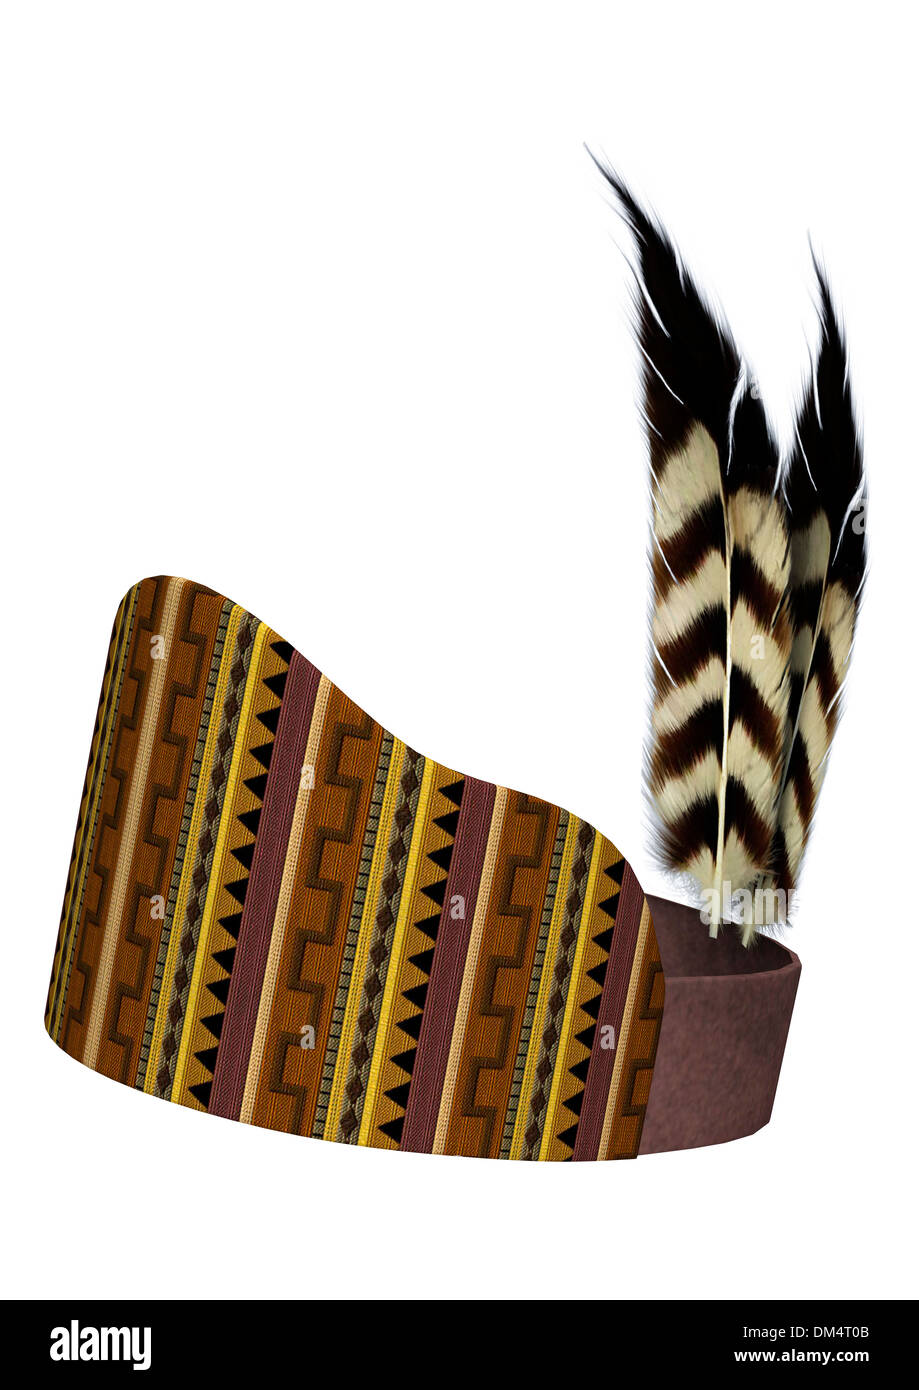 3D digital render of a native American feather headdress isolated on white background - Stock Image